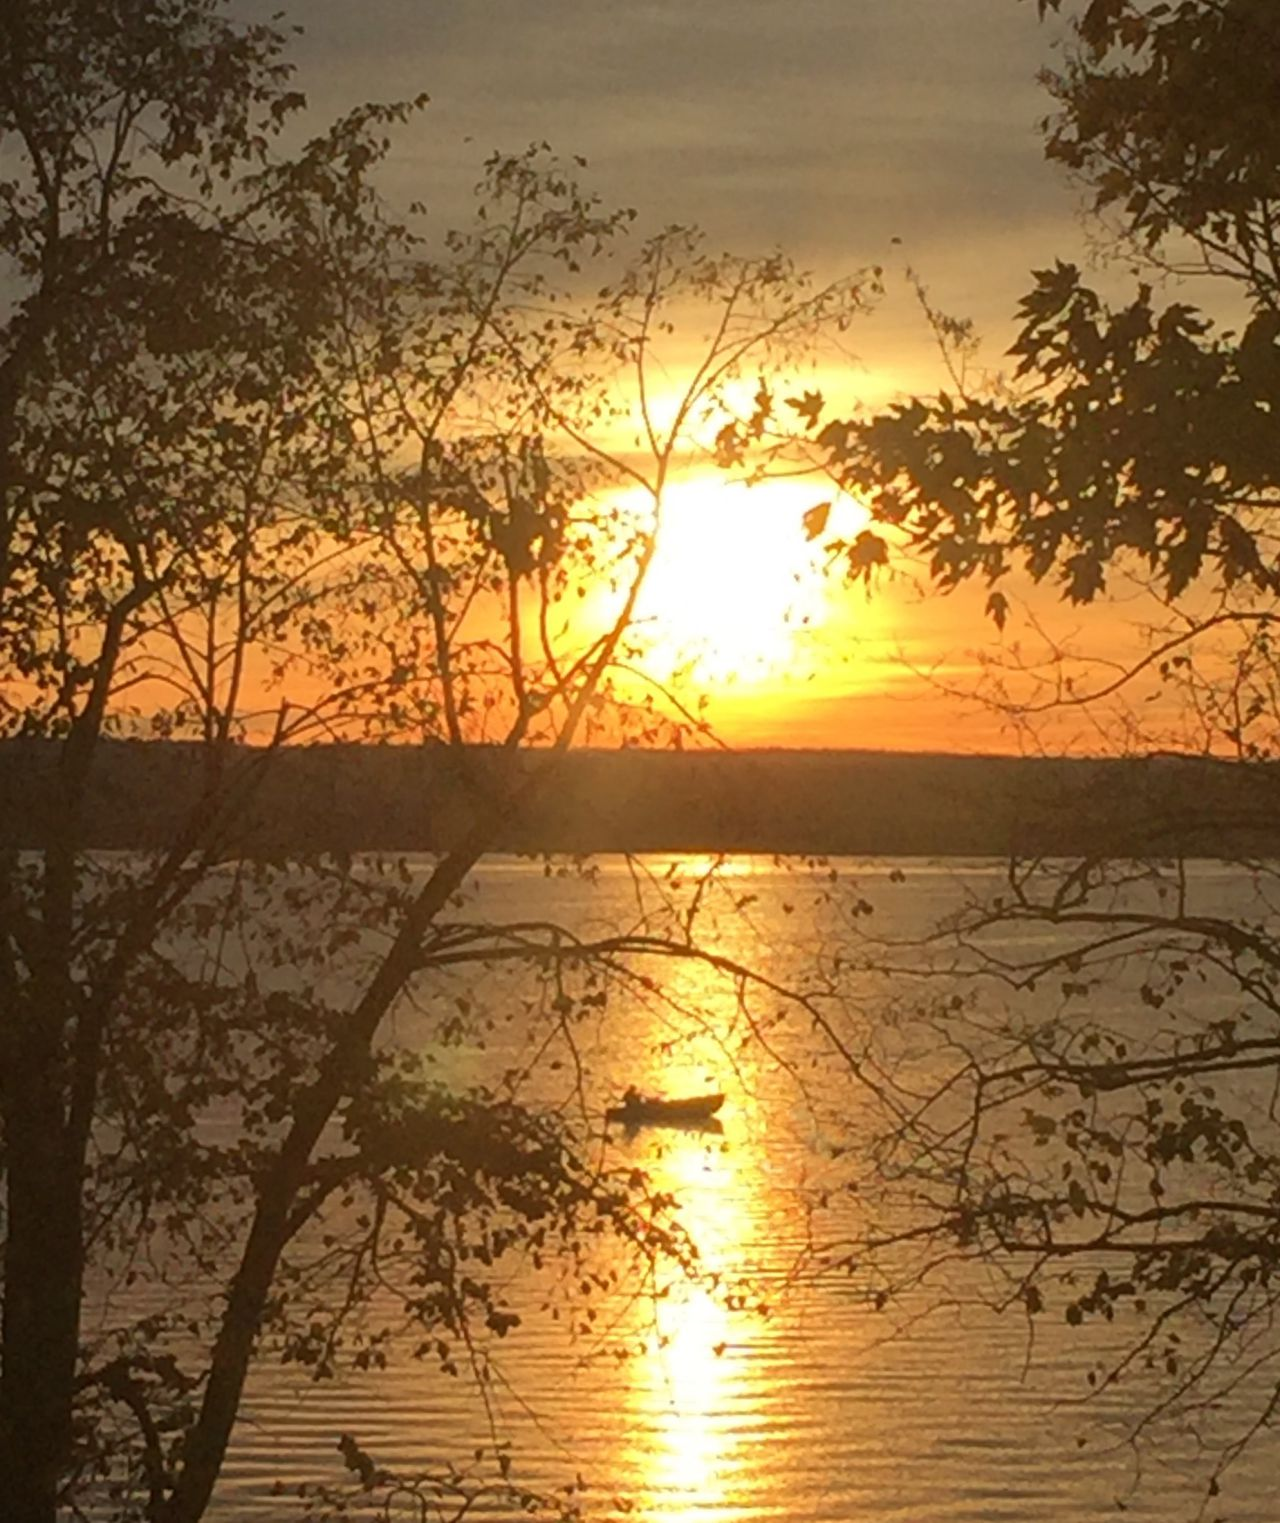 Cayuga Lake in Romulus over the weekend (photo)